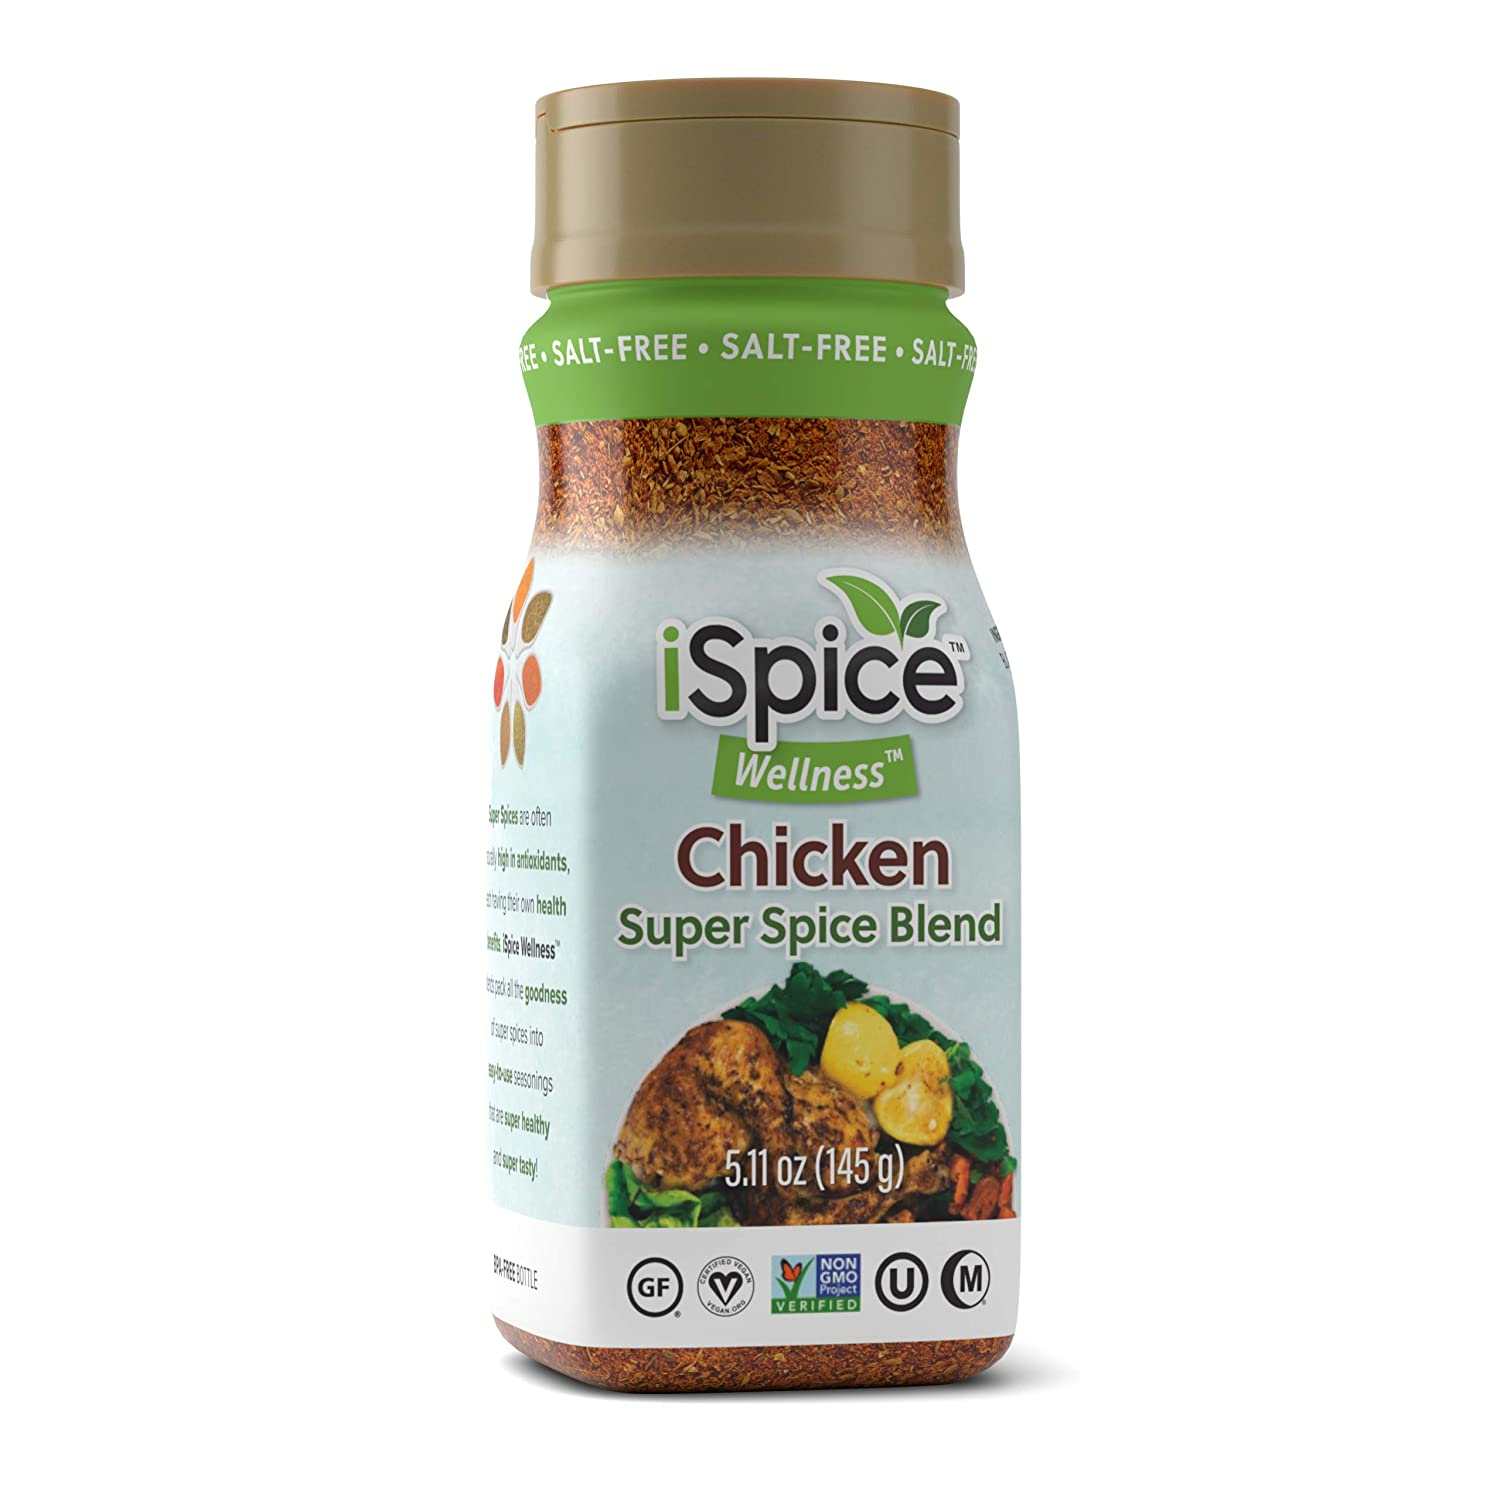 iSpice Beauty products - Max 73% OFF Salt-Free Sugar free Chicken Wellness 100% Sup Pure